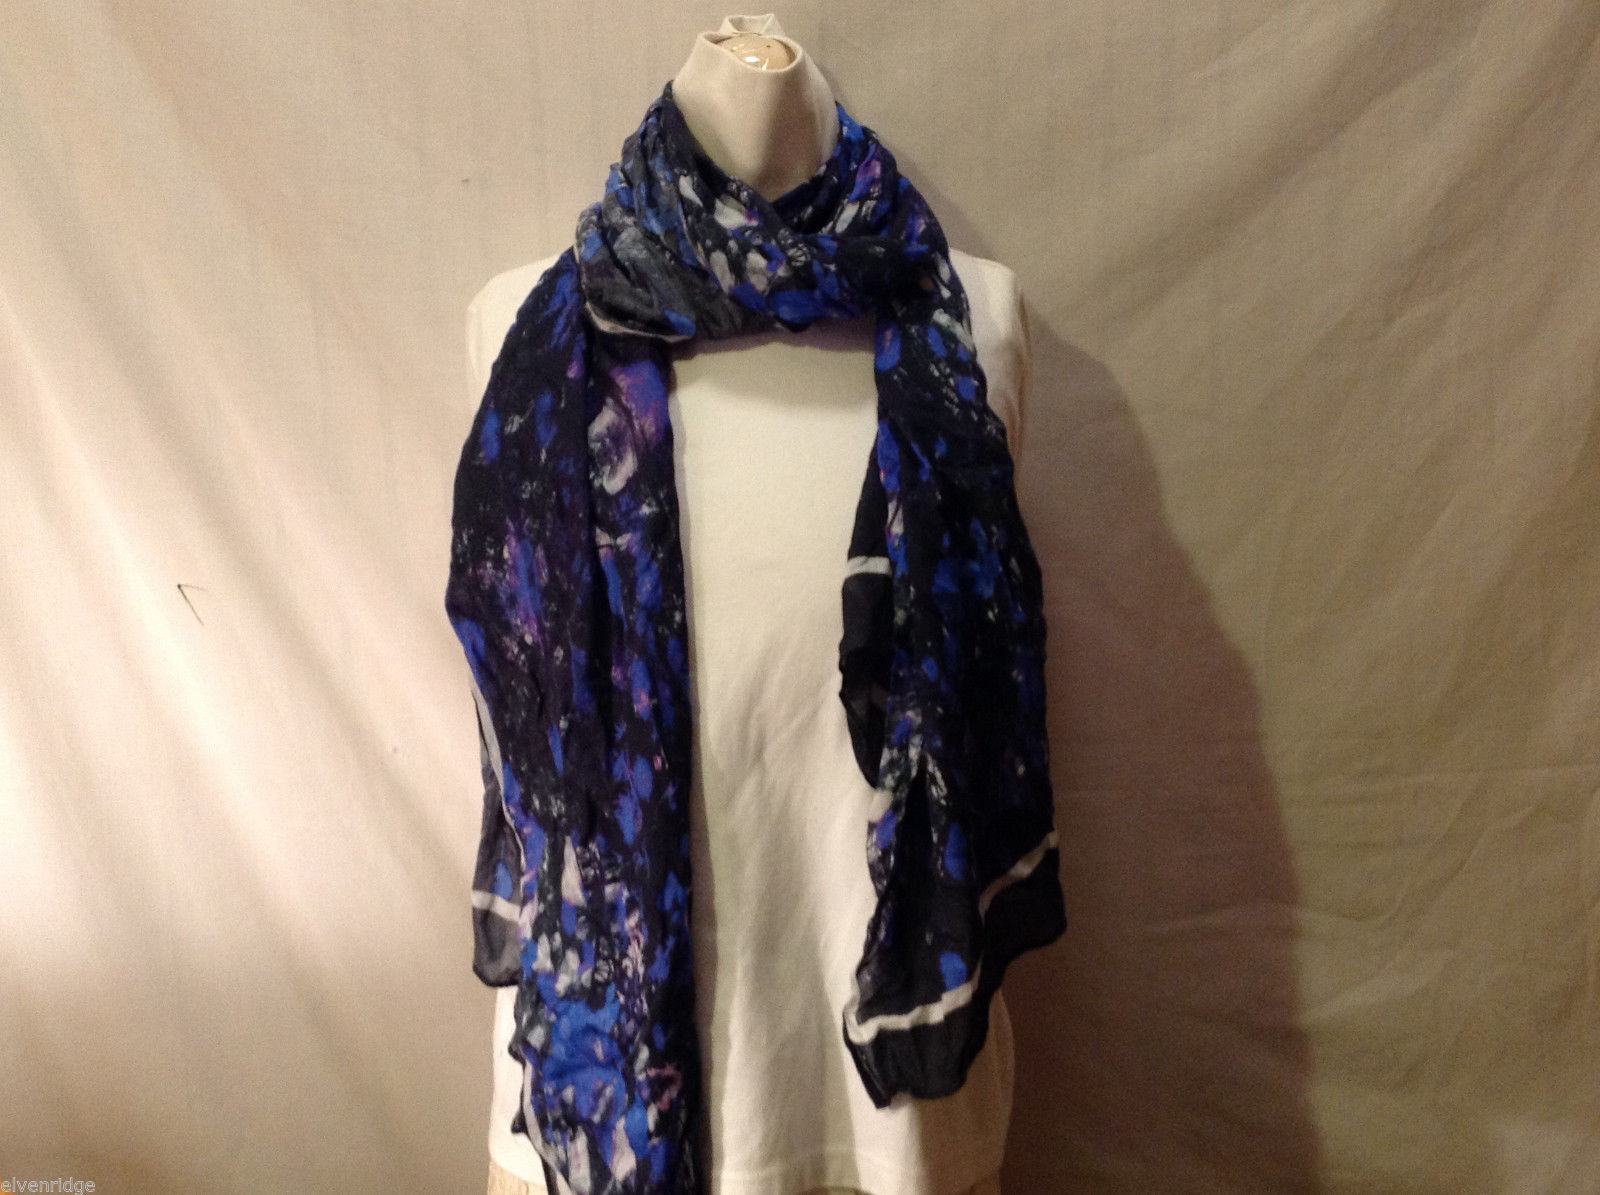 Lightweight Scarf Abstract Swirl Pattern in Navy Blue, Purple, Violet and White